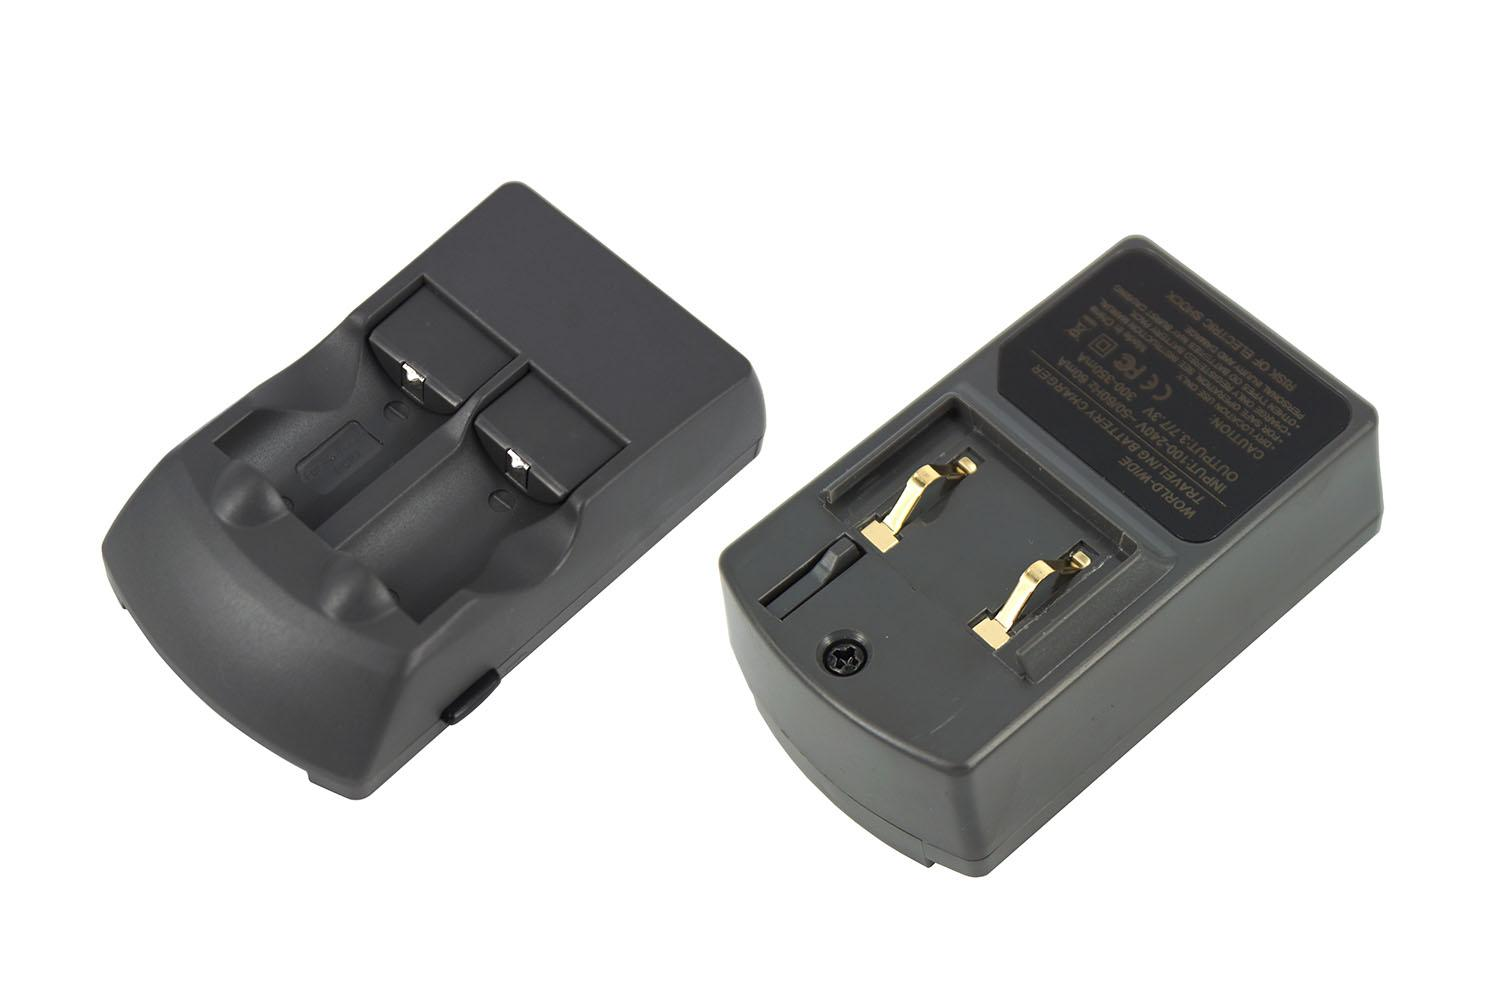 battery charger for fujifilm cr2 dlcr2 instax mini 55 50. Black Bedroom Furniture Sets. Home Design Ideas